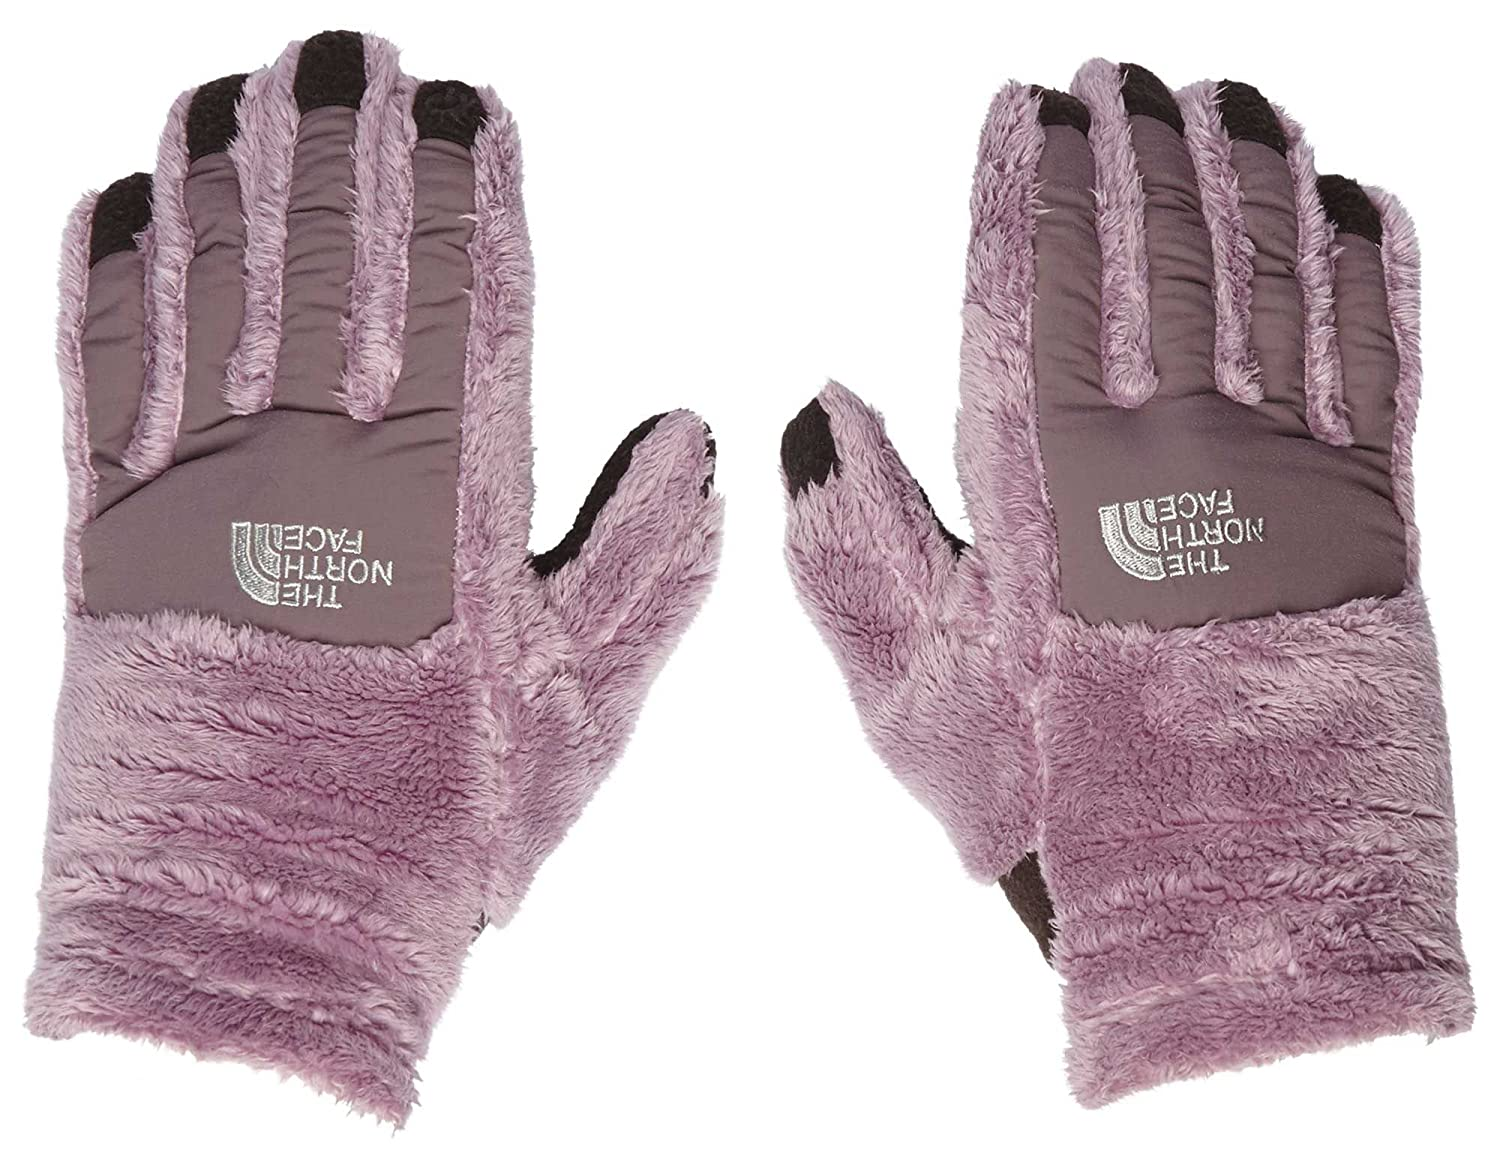 ff3b79b3a25 The north face womens denali thermal etip gloves sports outdoors jpg  1500x1171 North face denali thermal